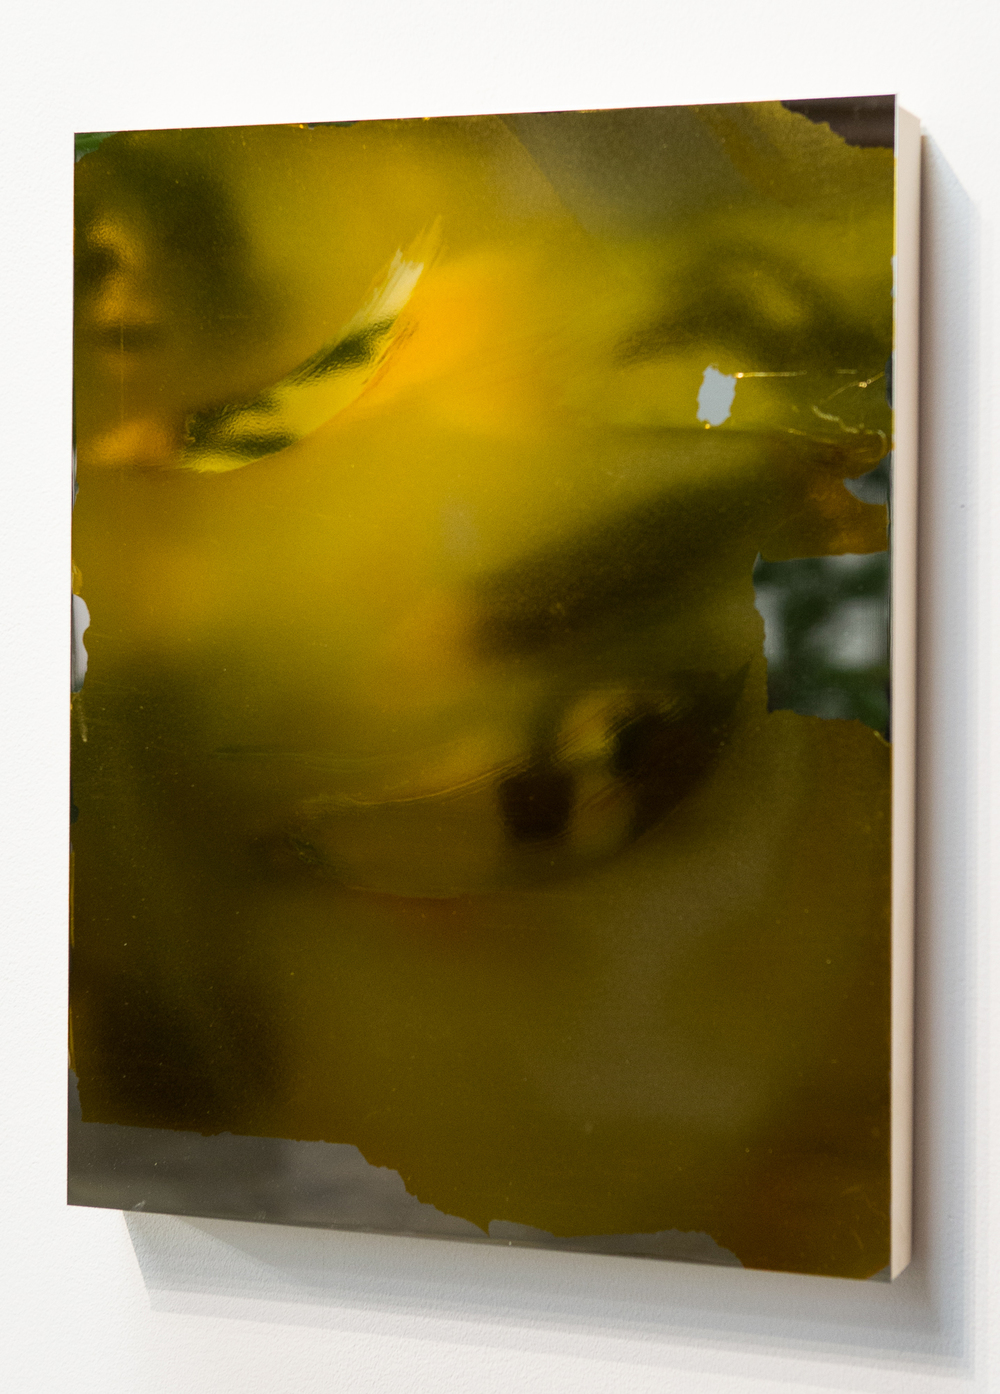 MLSL_10_Bunny, 2015  Gold tint on stainless steel  18 x 14 in (45.72 x 35.56 cm)